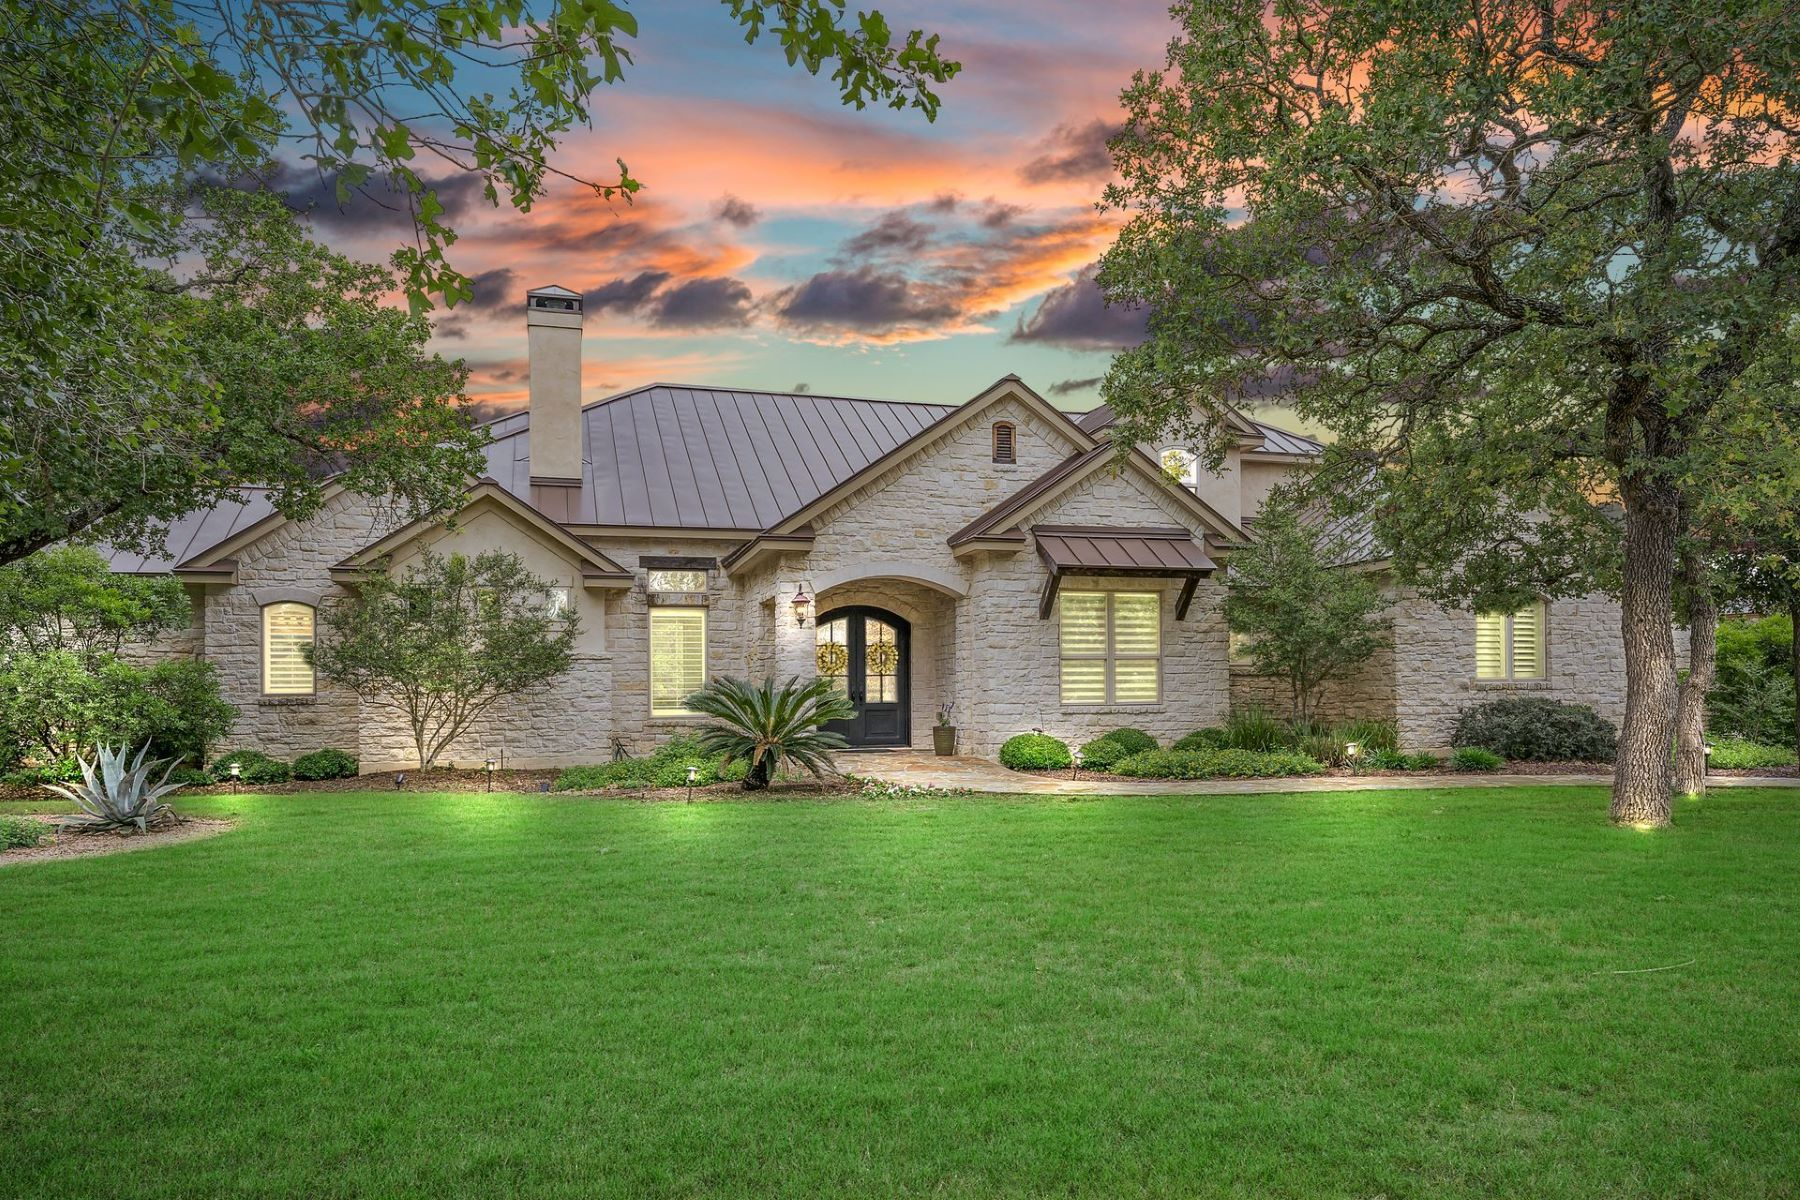 Single Family Homes for Sale at Exquisite Custom Home 15 Ranch Brook Road Fair Oaks Ranch, Texas 78015 United States